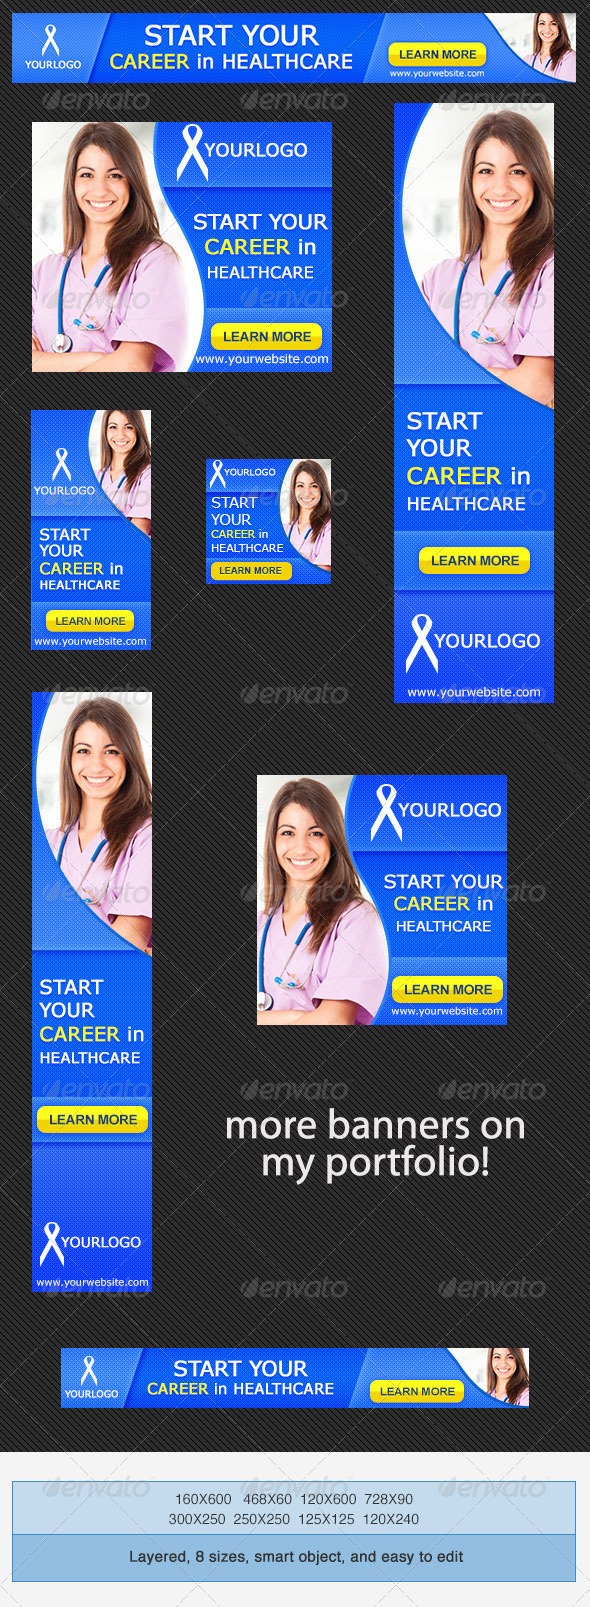 Medical Career Banner Ad Template - Banners & Ads Web Elements